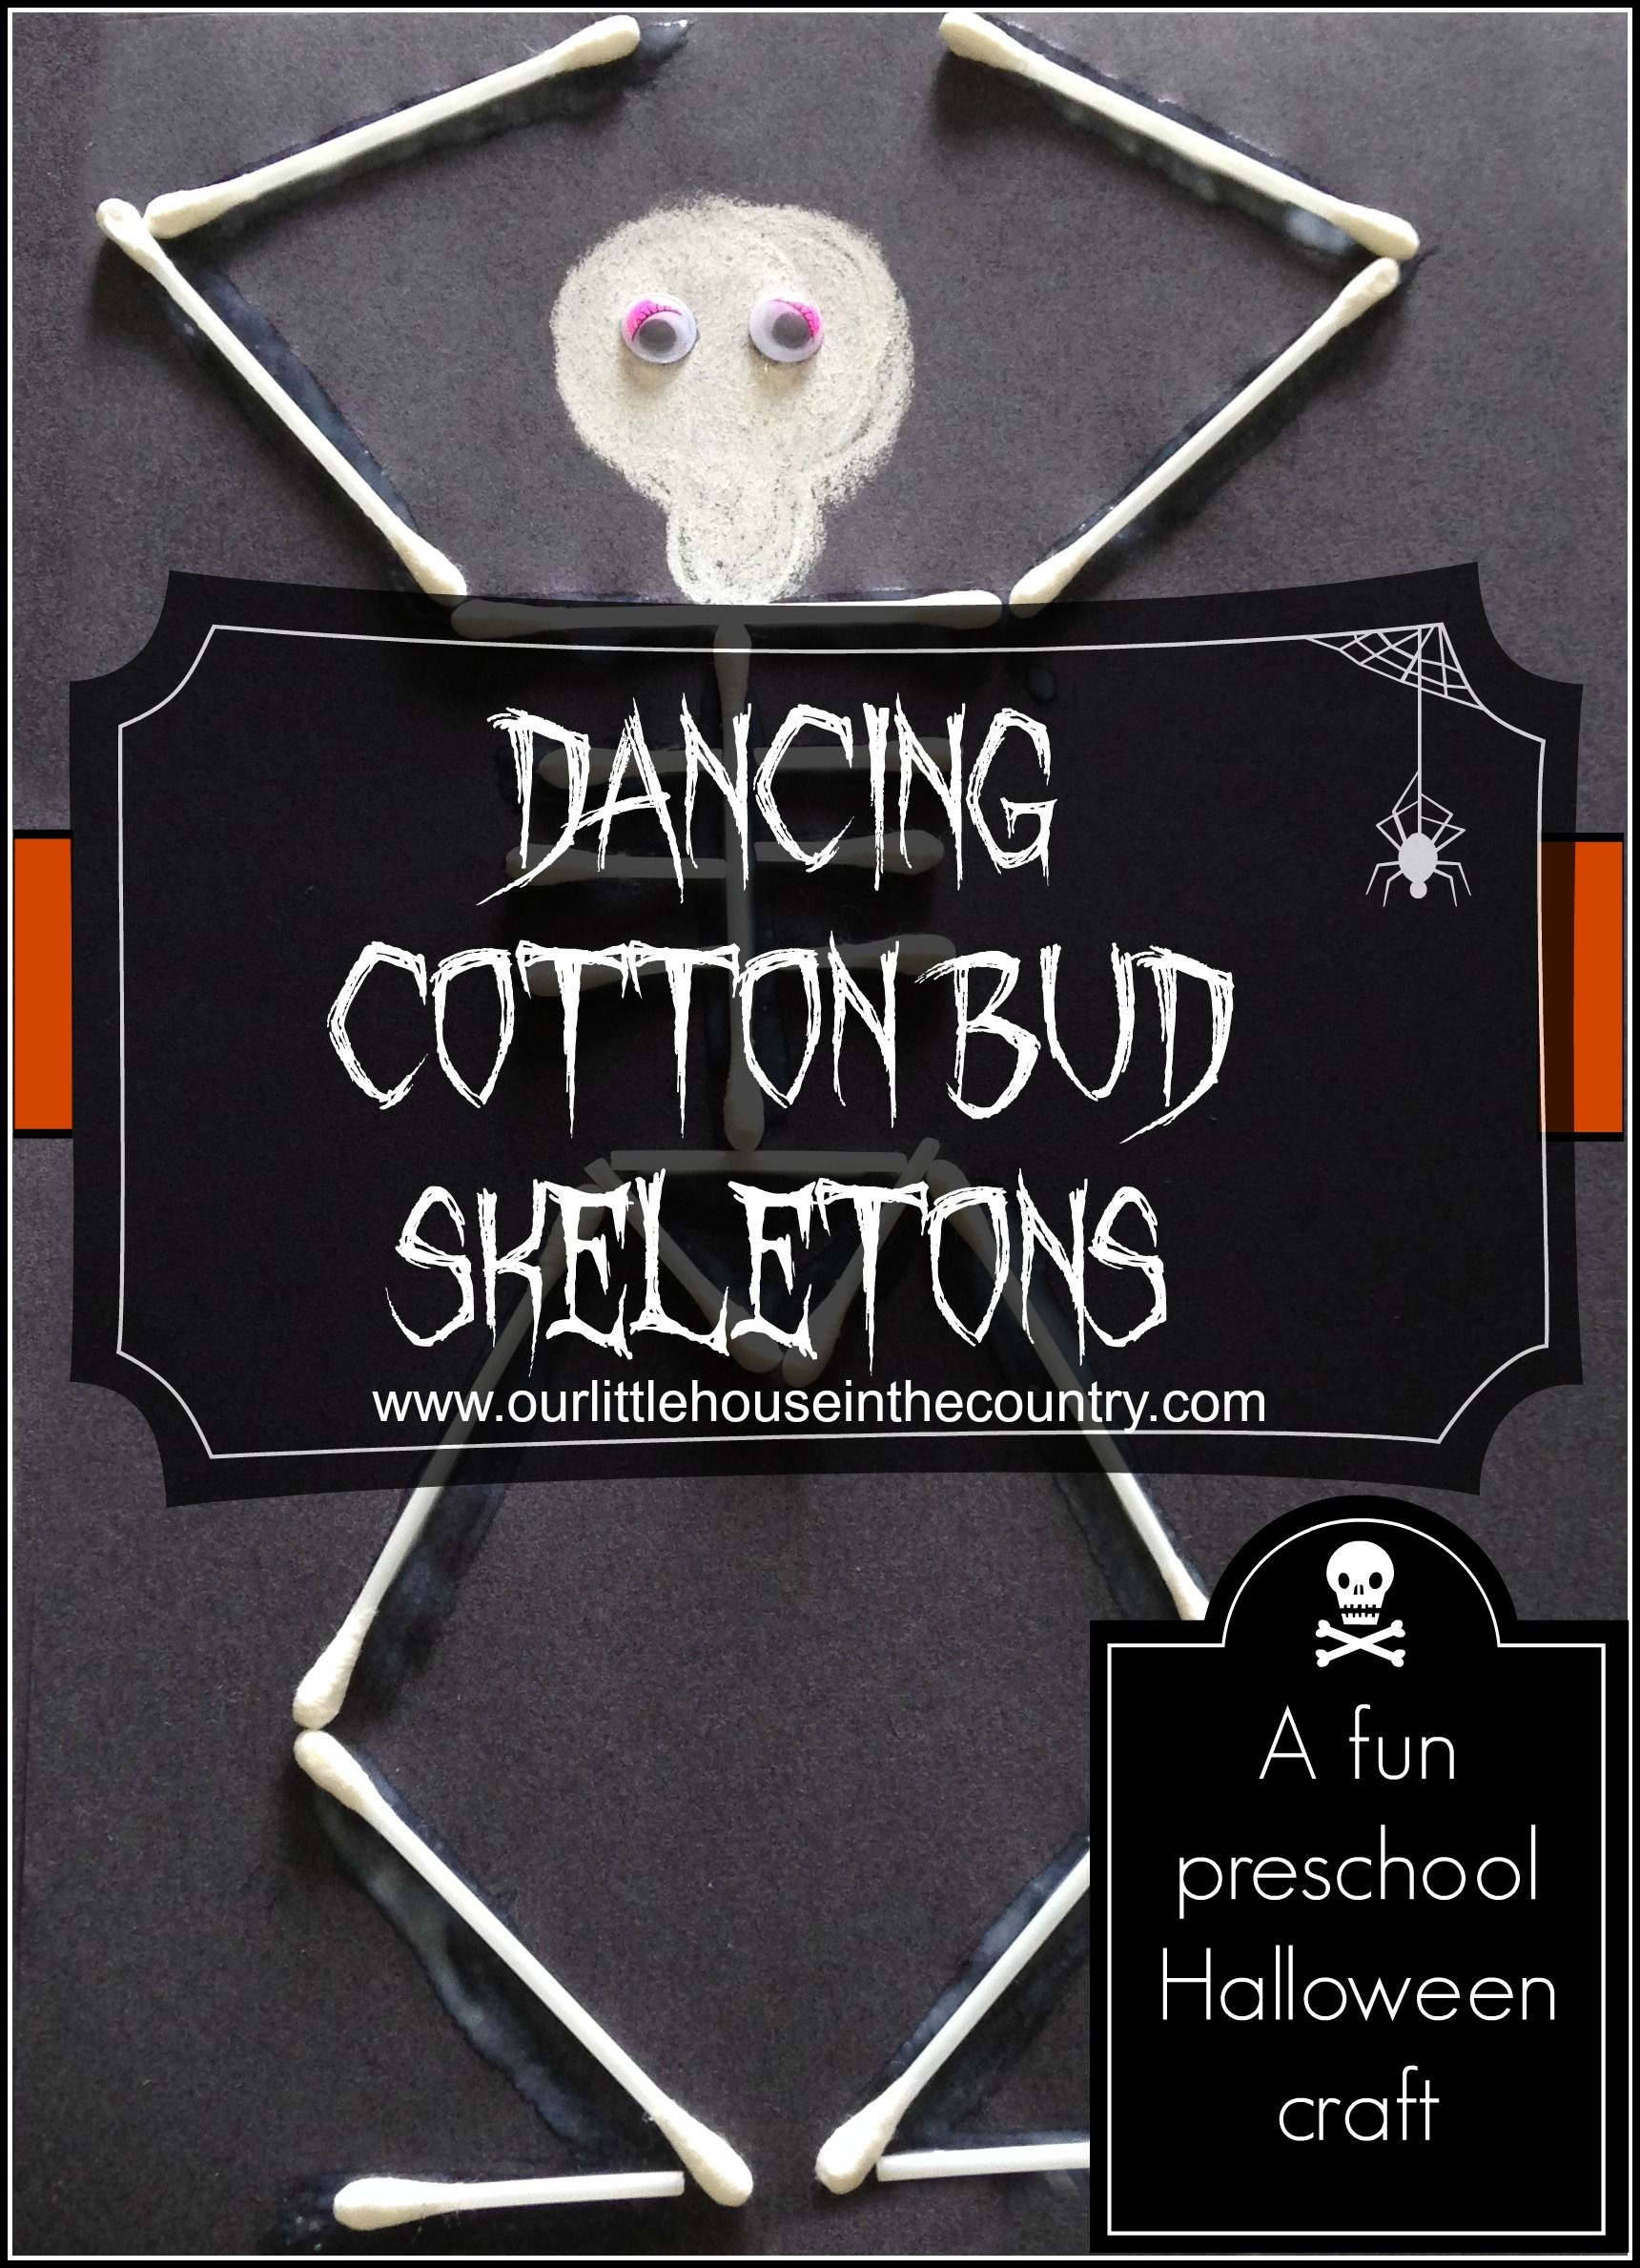 Dancing Cotton Bud Skeletons - a fun preschool #Halloween craft! #kidscrafts #education (repinned by Super Simple Songs)